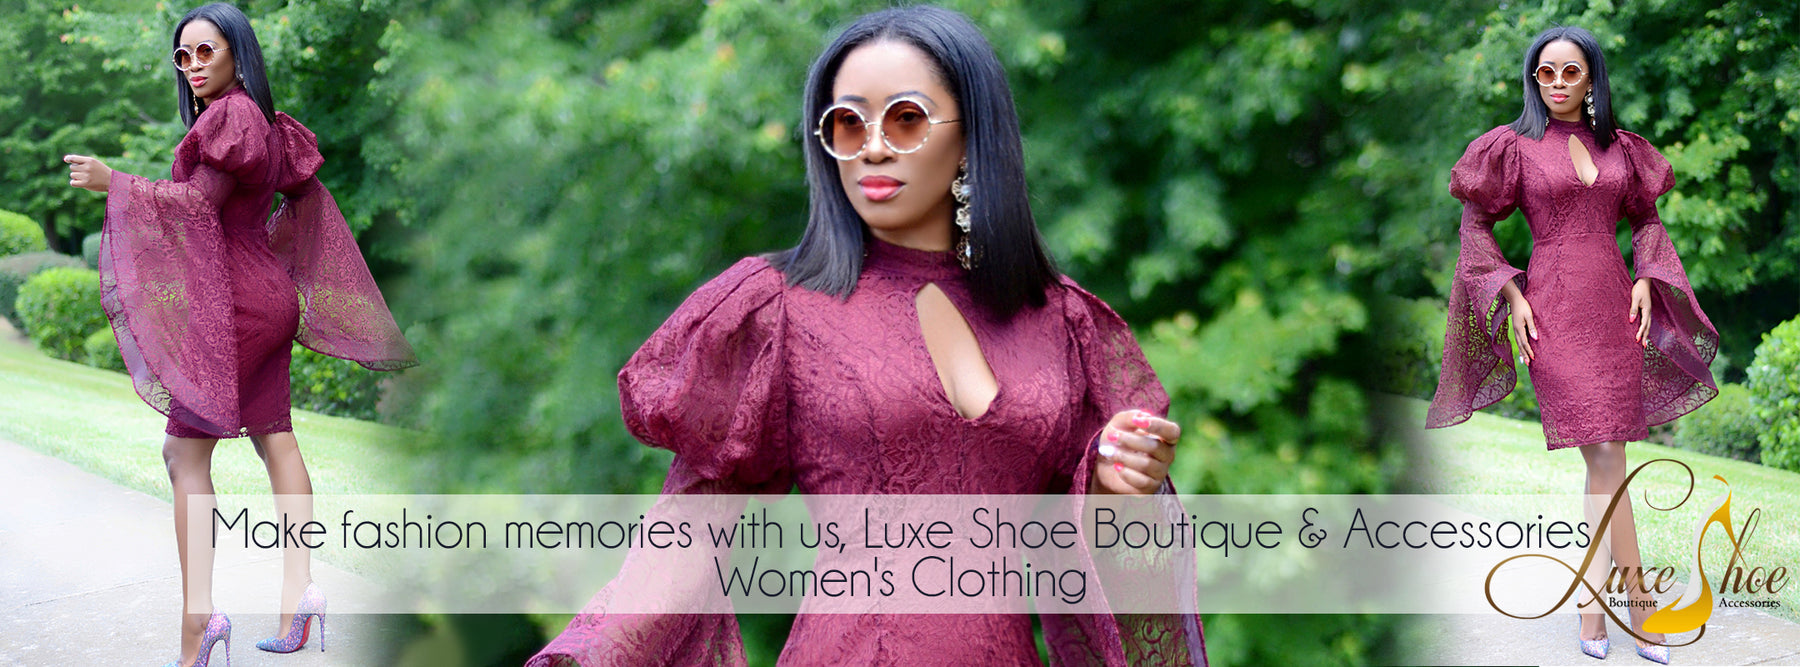 Luxe Shoe Boutique & Accessories